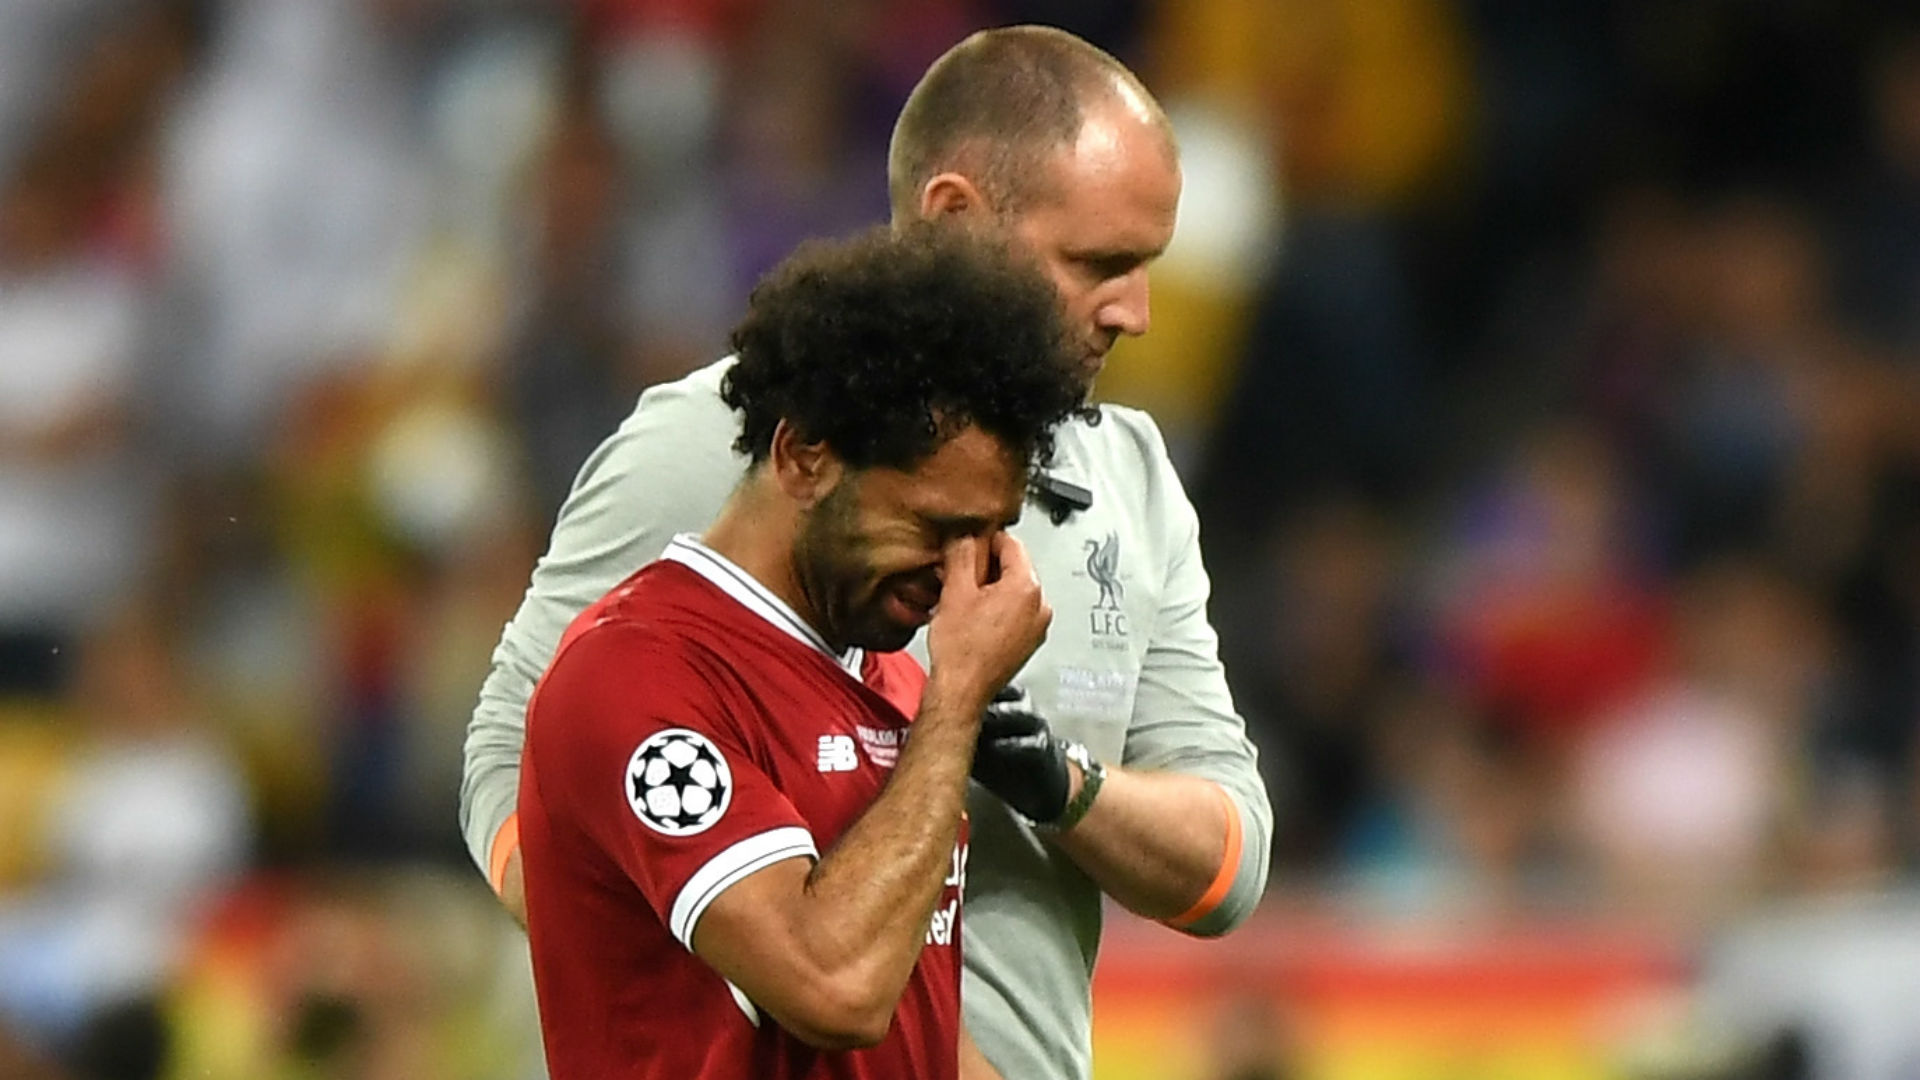 Salah: Last season's Champions League anguish 'still hurts'